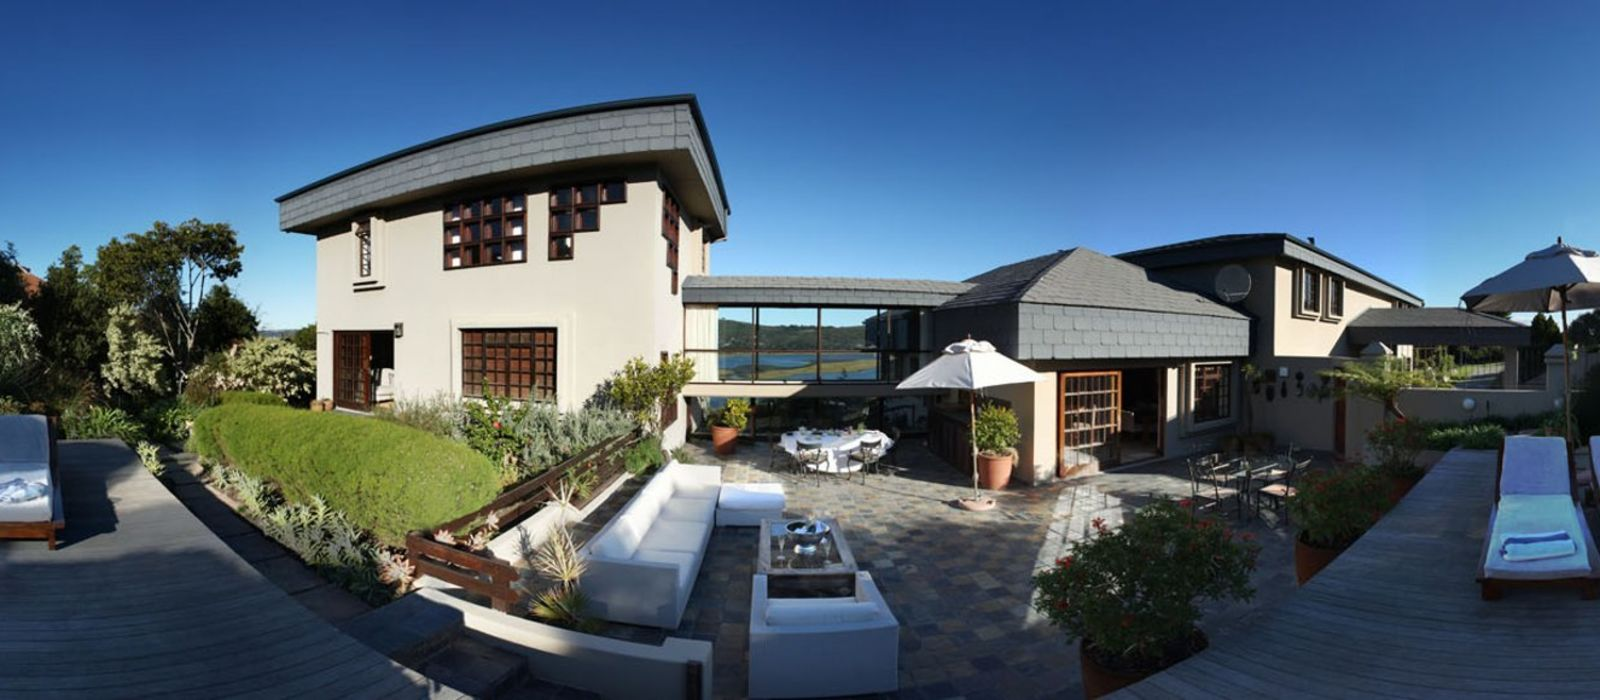 Hotel Kanonkop Guest House South Africa